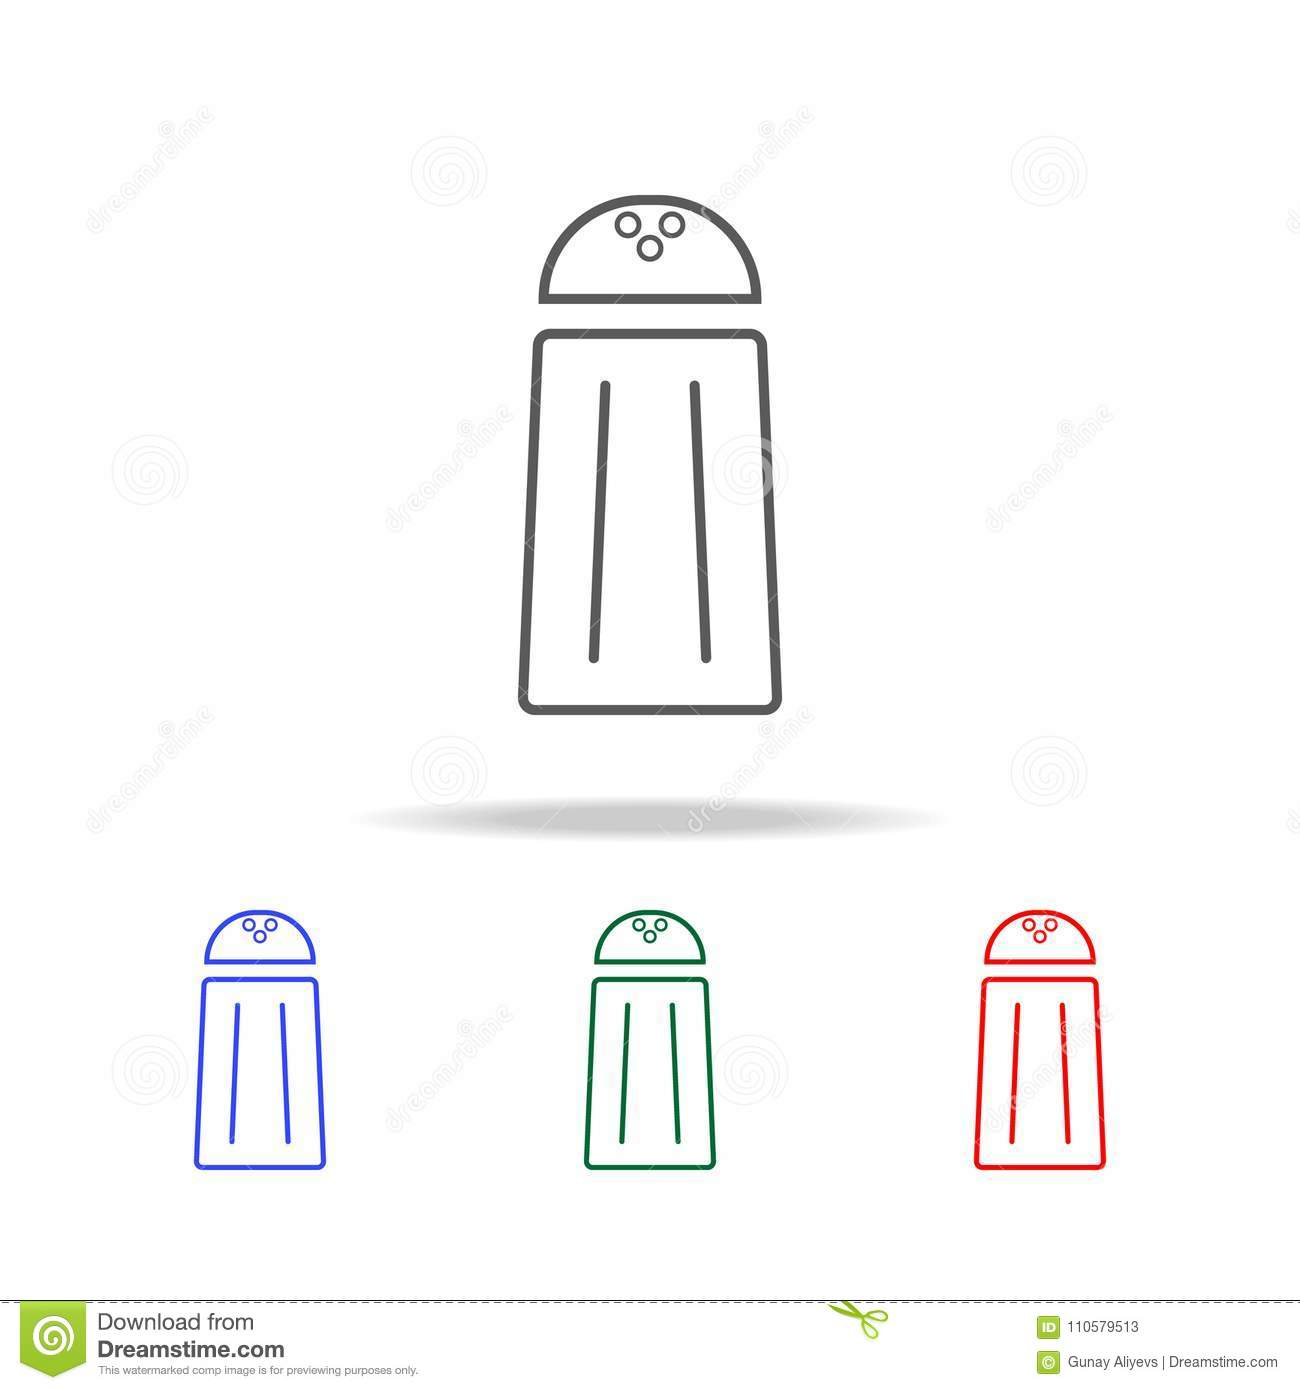 Salt Line Icon Elements In Multi Colored Icons For Mobile Concept And Web Apps Icons For Website Design And Development App Dev Stock Illustration Illustration Of Icon Background 110579513